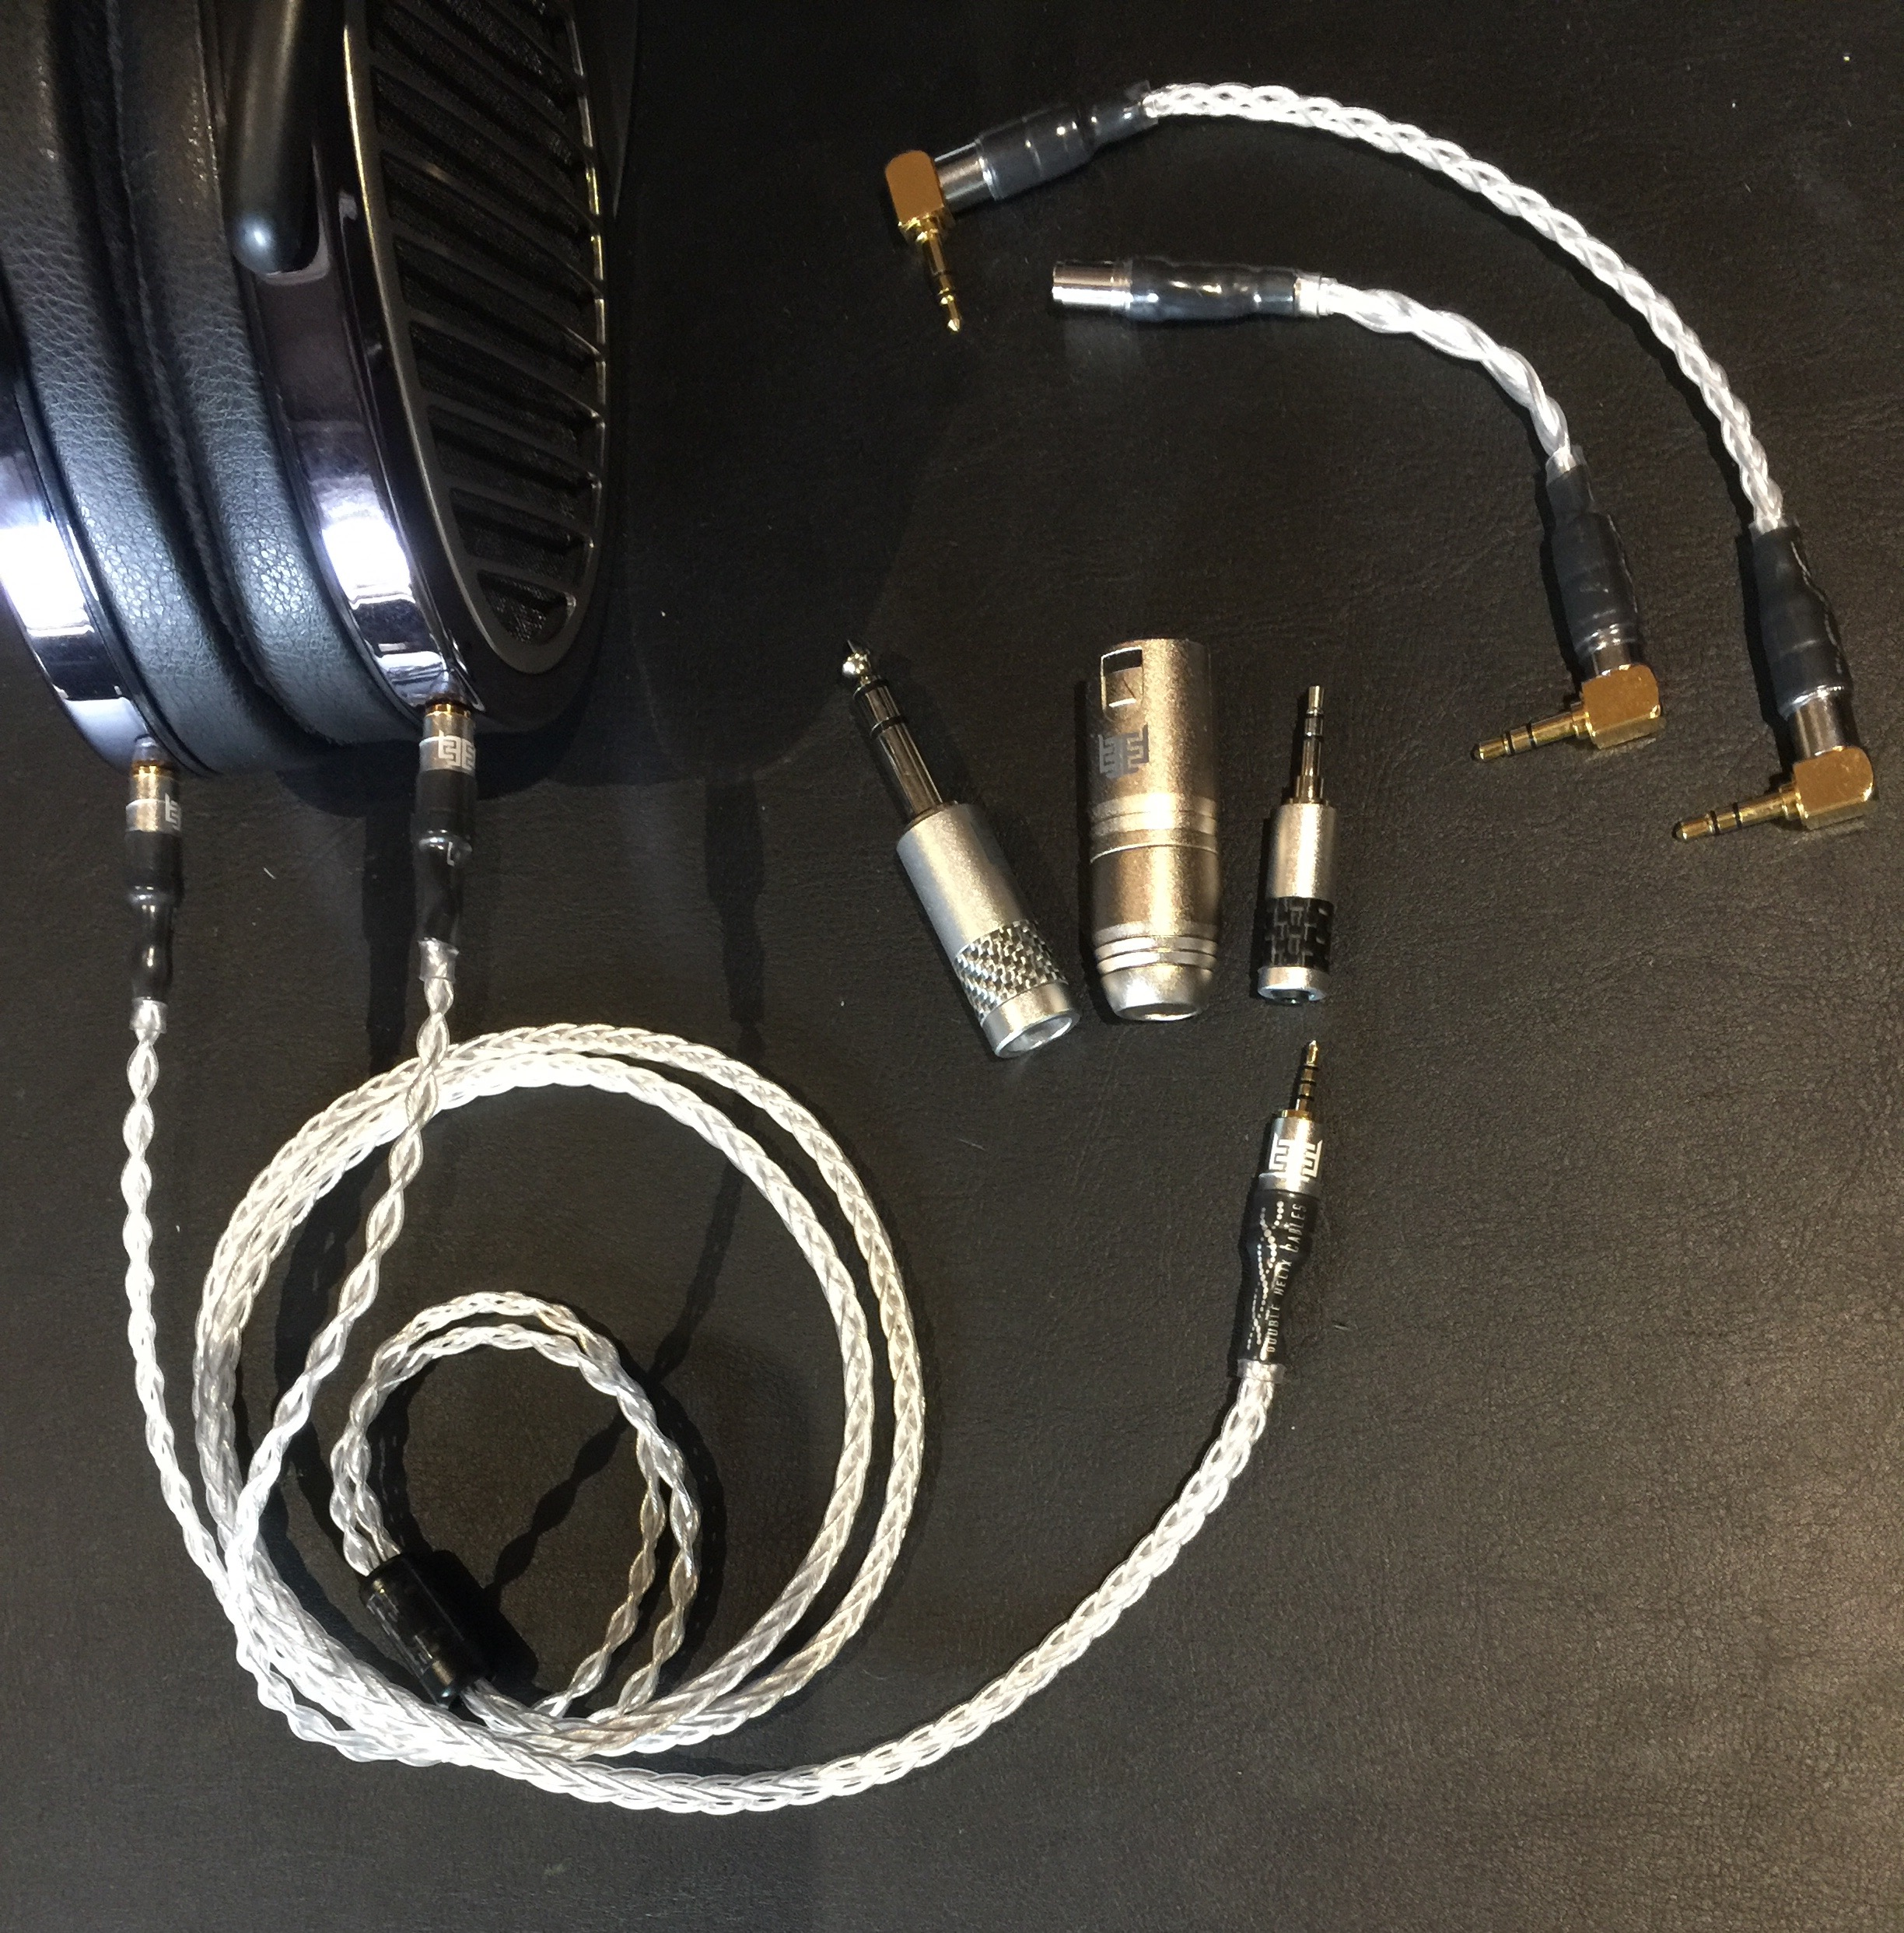 Double Helix Cables Thread | Page 66 | Headphone Reviews and ...